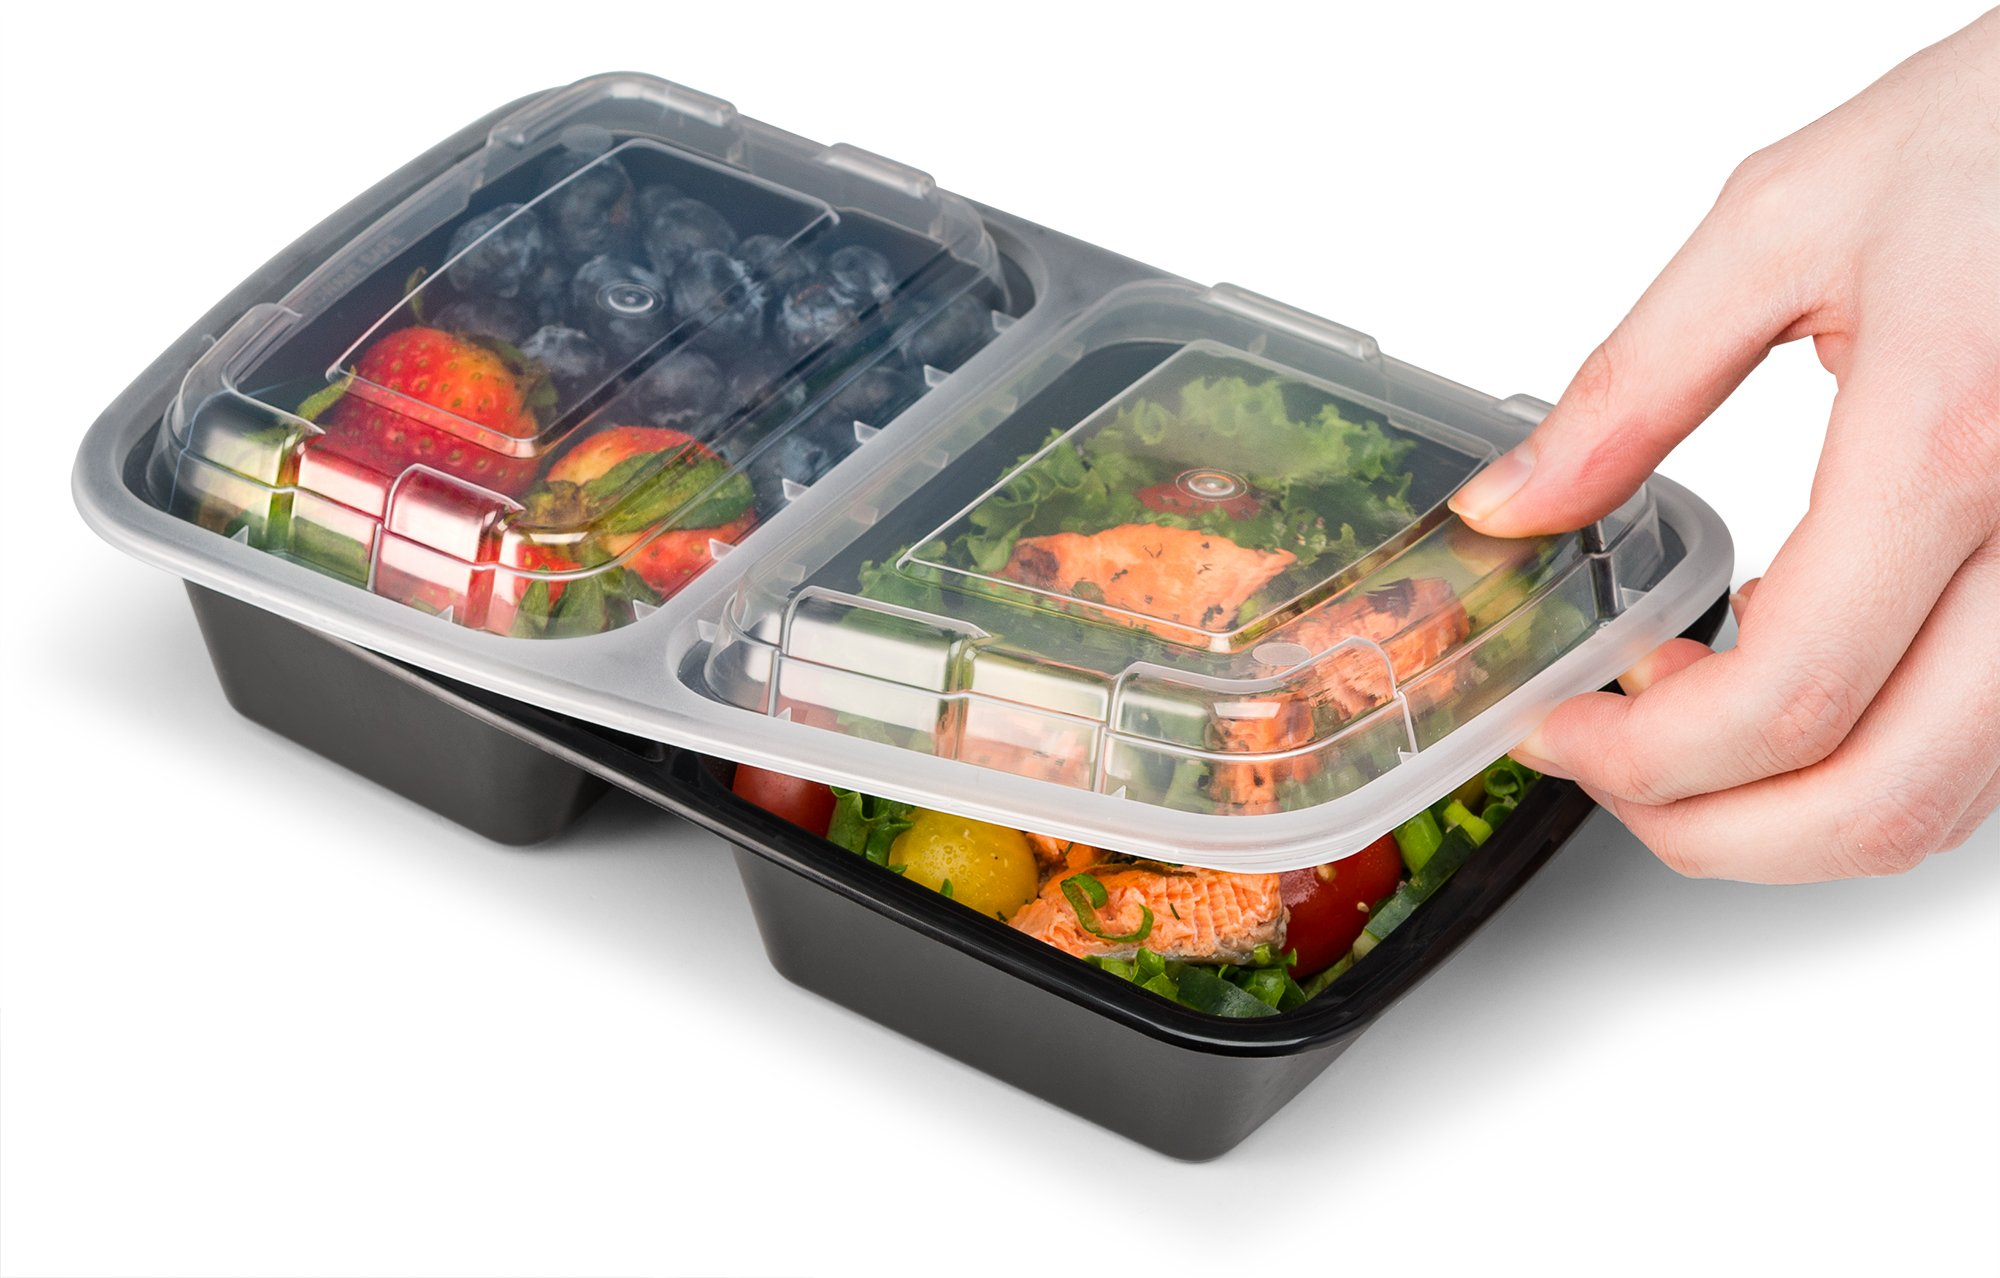 Ez Prepa [20 Pack] 28oz 2 Compartment Meal Prep Containers with Lids - Food Storage Containers Bento Box Lunch Box Made of BPA Free Plastic, Stackable, Reusable, Microwavable, Freezer, and Dishwasher by Ez Prepa (Image #6)